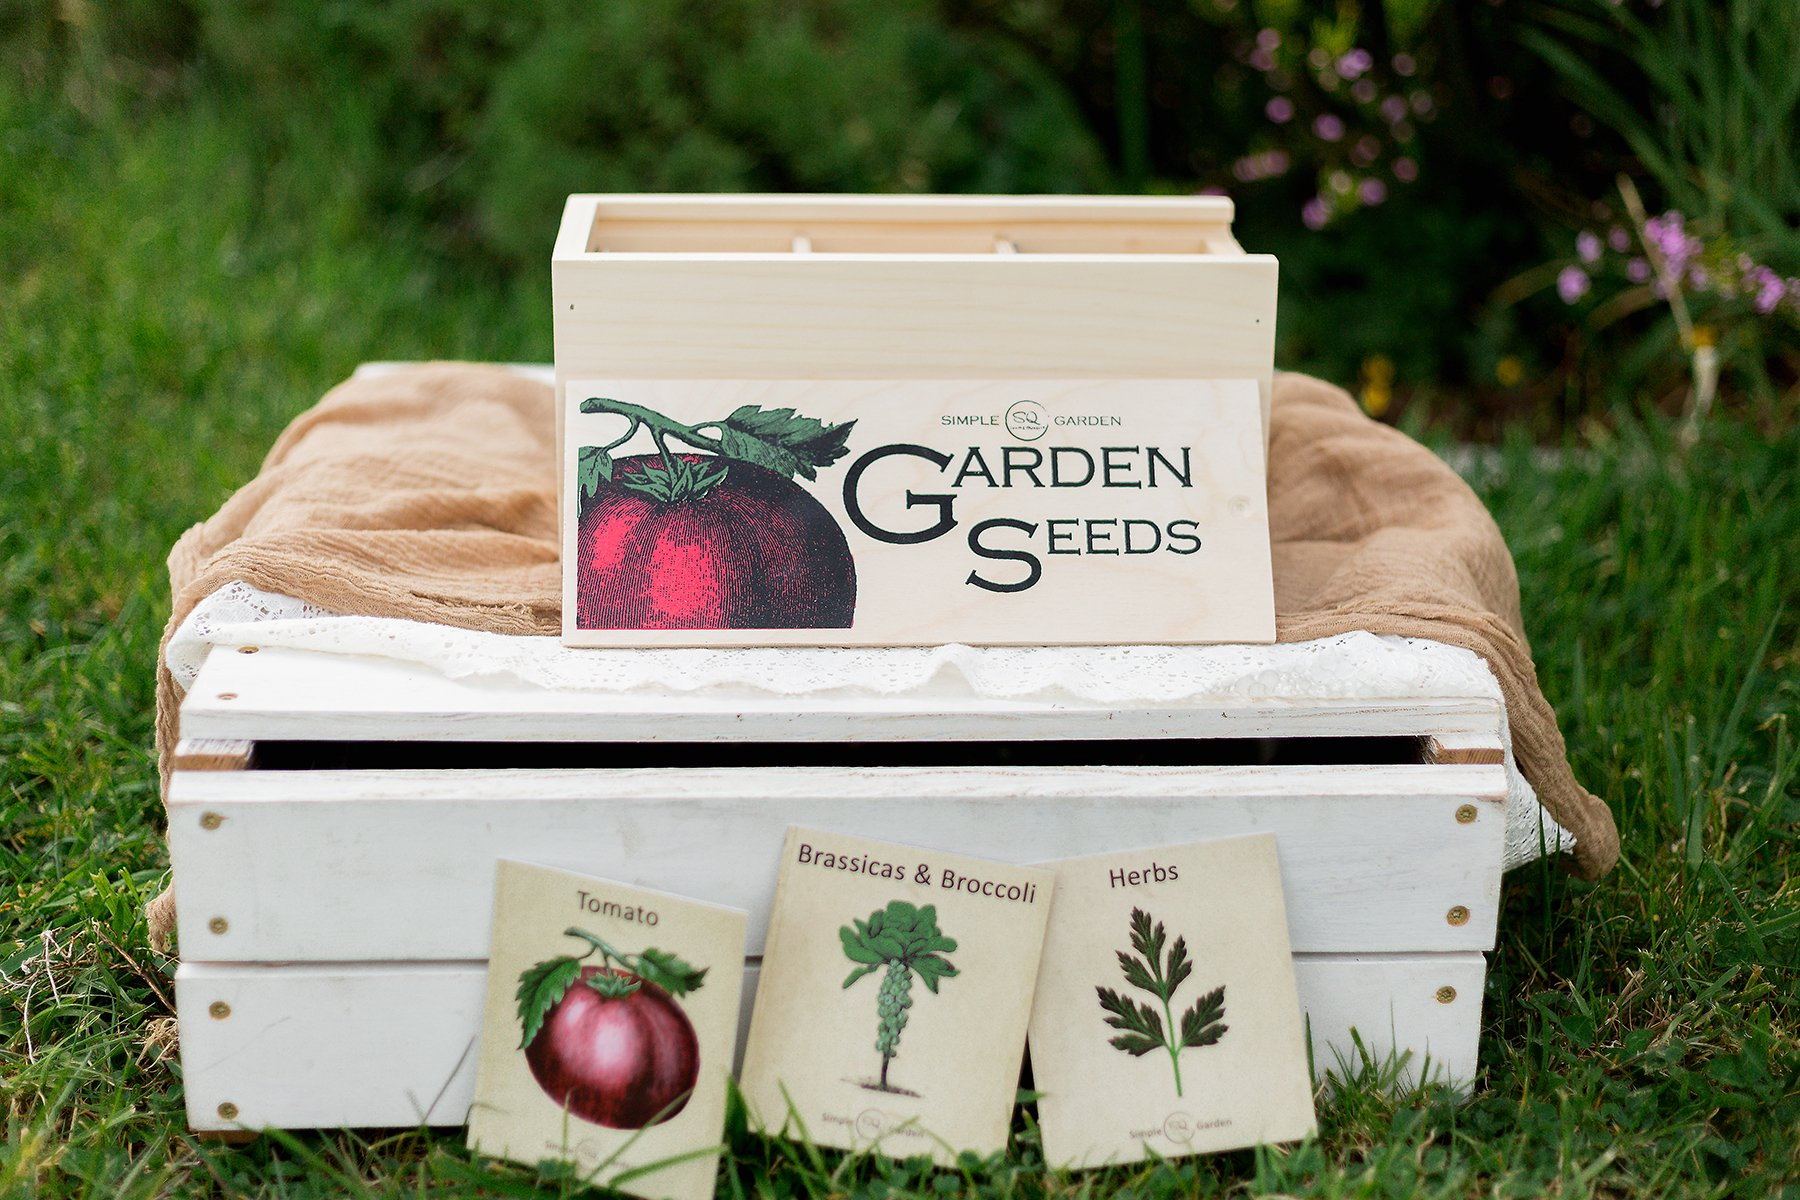 Seed Storage and Organizer Box for Your Garden Seed Packets - New - Tall Size -11.75 L 5.1 Wide 6.5 H - Expertly Crafted in The U.S.A. with Vintage Style Divider Cards to Organize Seeds by Simple Quality (Image #2)